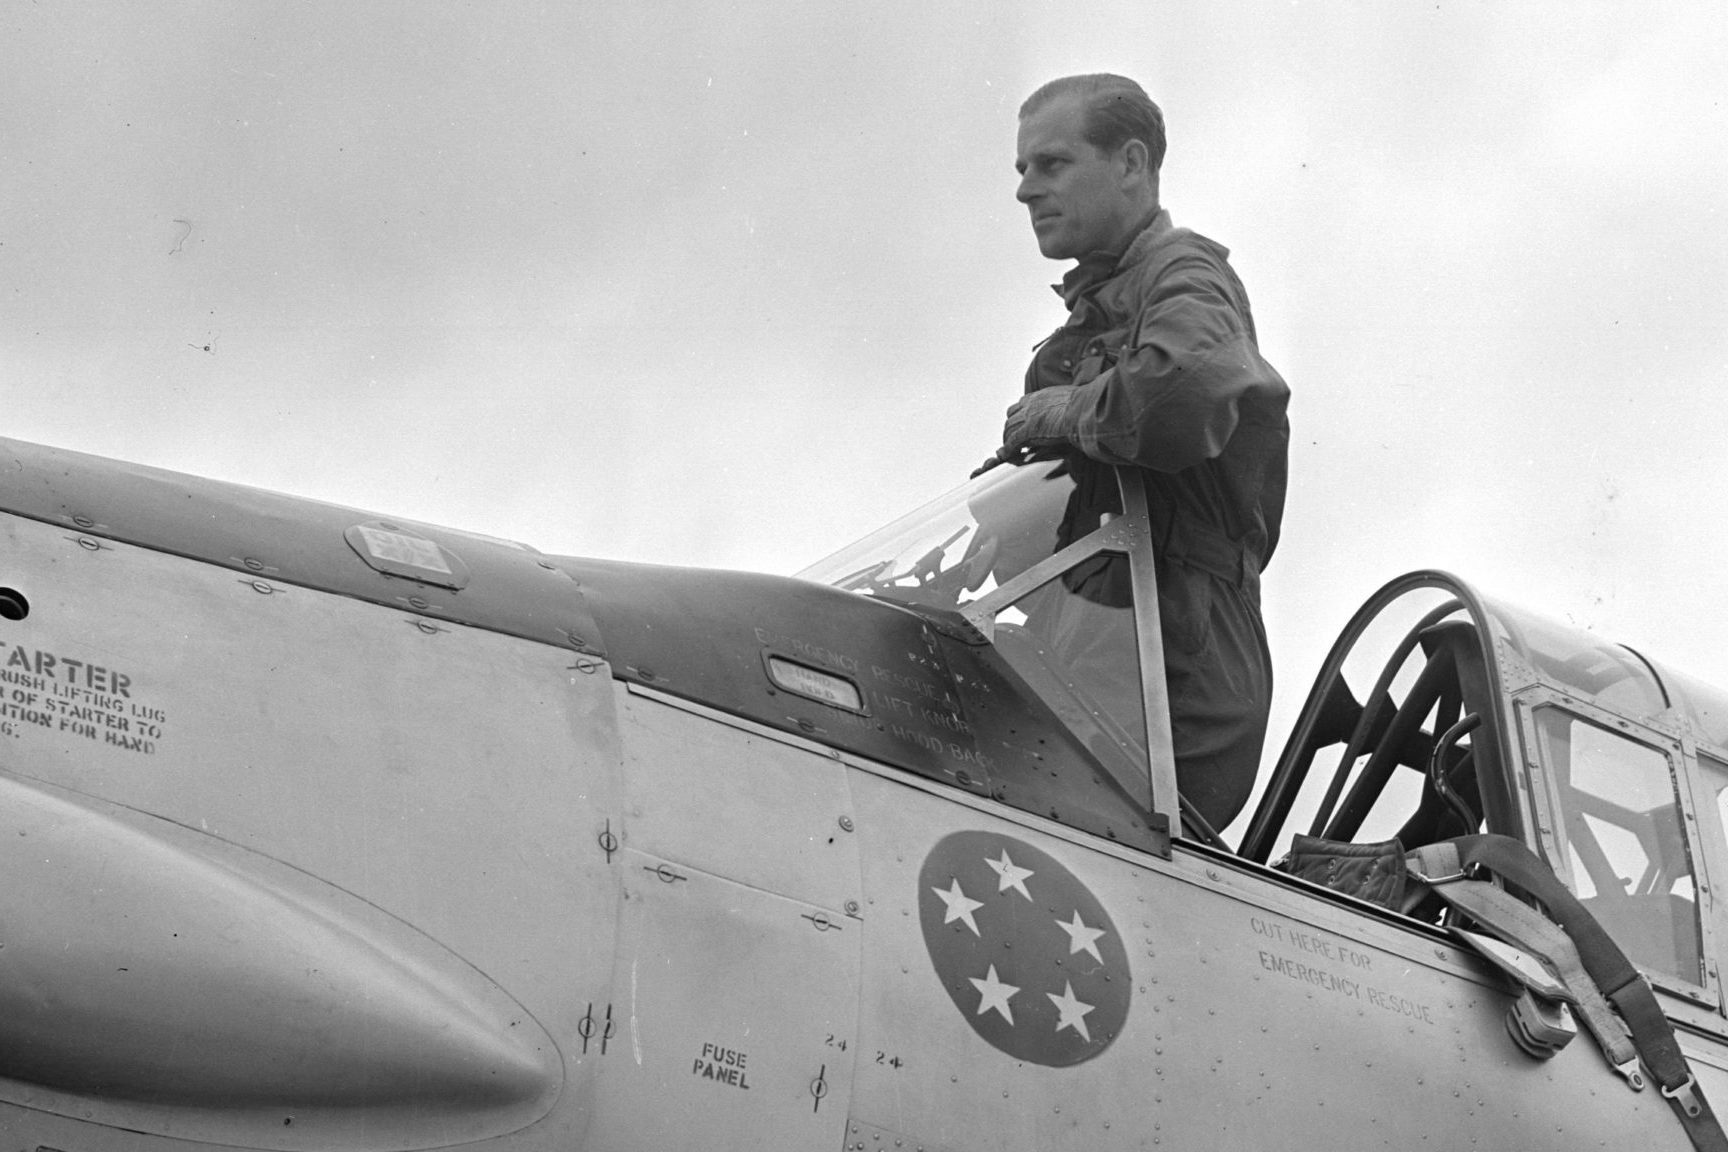 Prince Philip In Cockpit